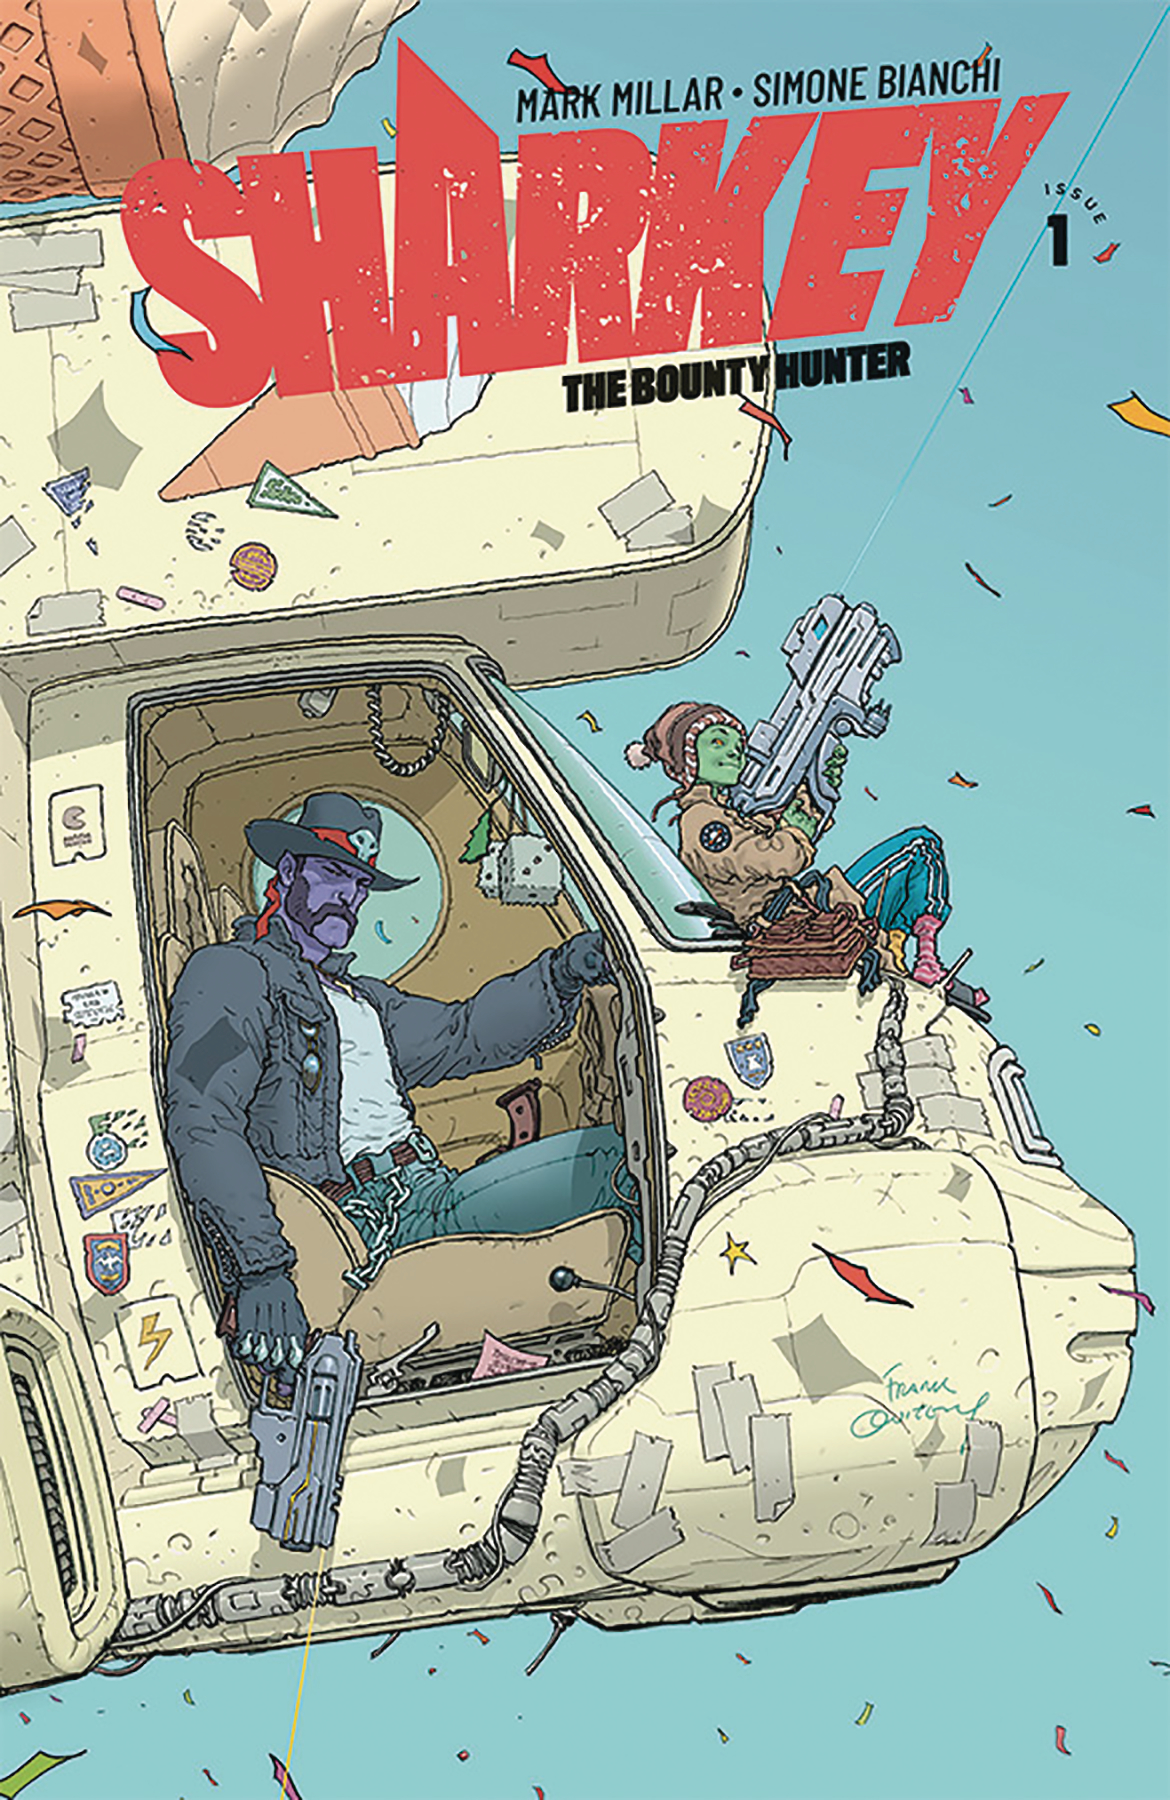 SHARKEY BOUNTY HUNTER #1 (OF 6) CVR C QUITELY (MR)